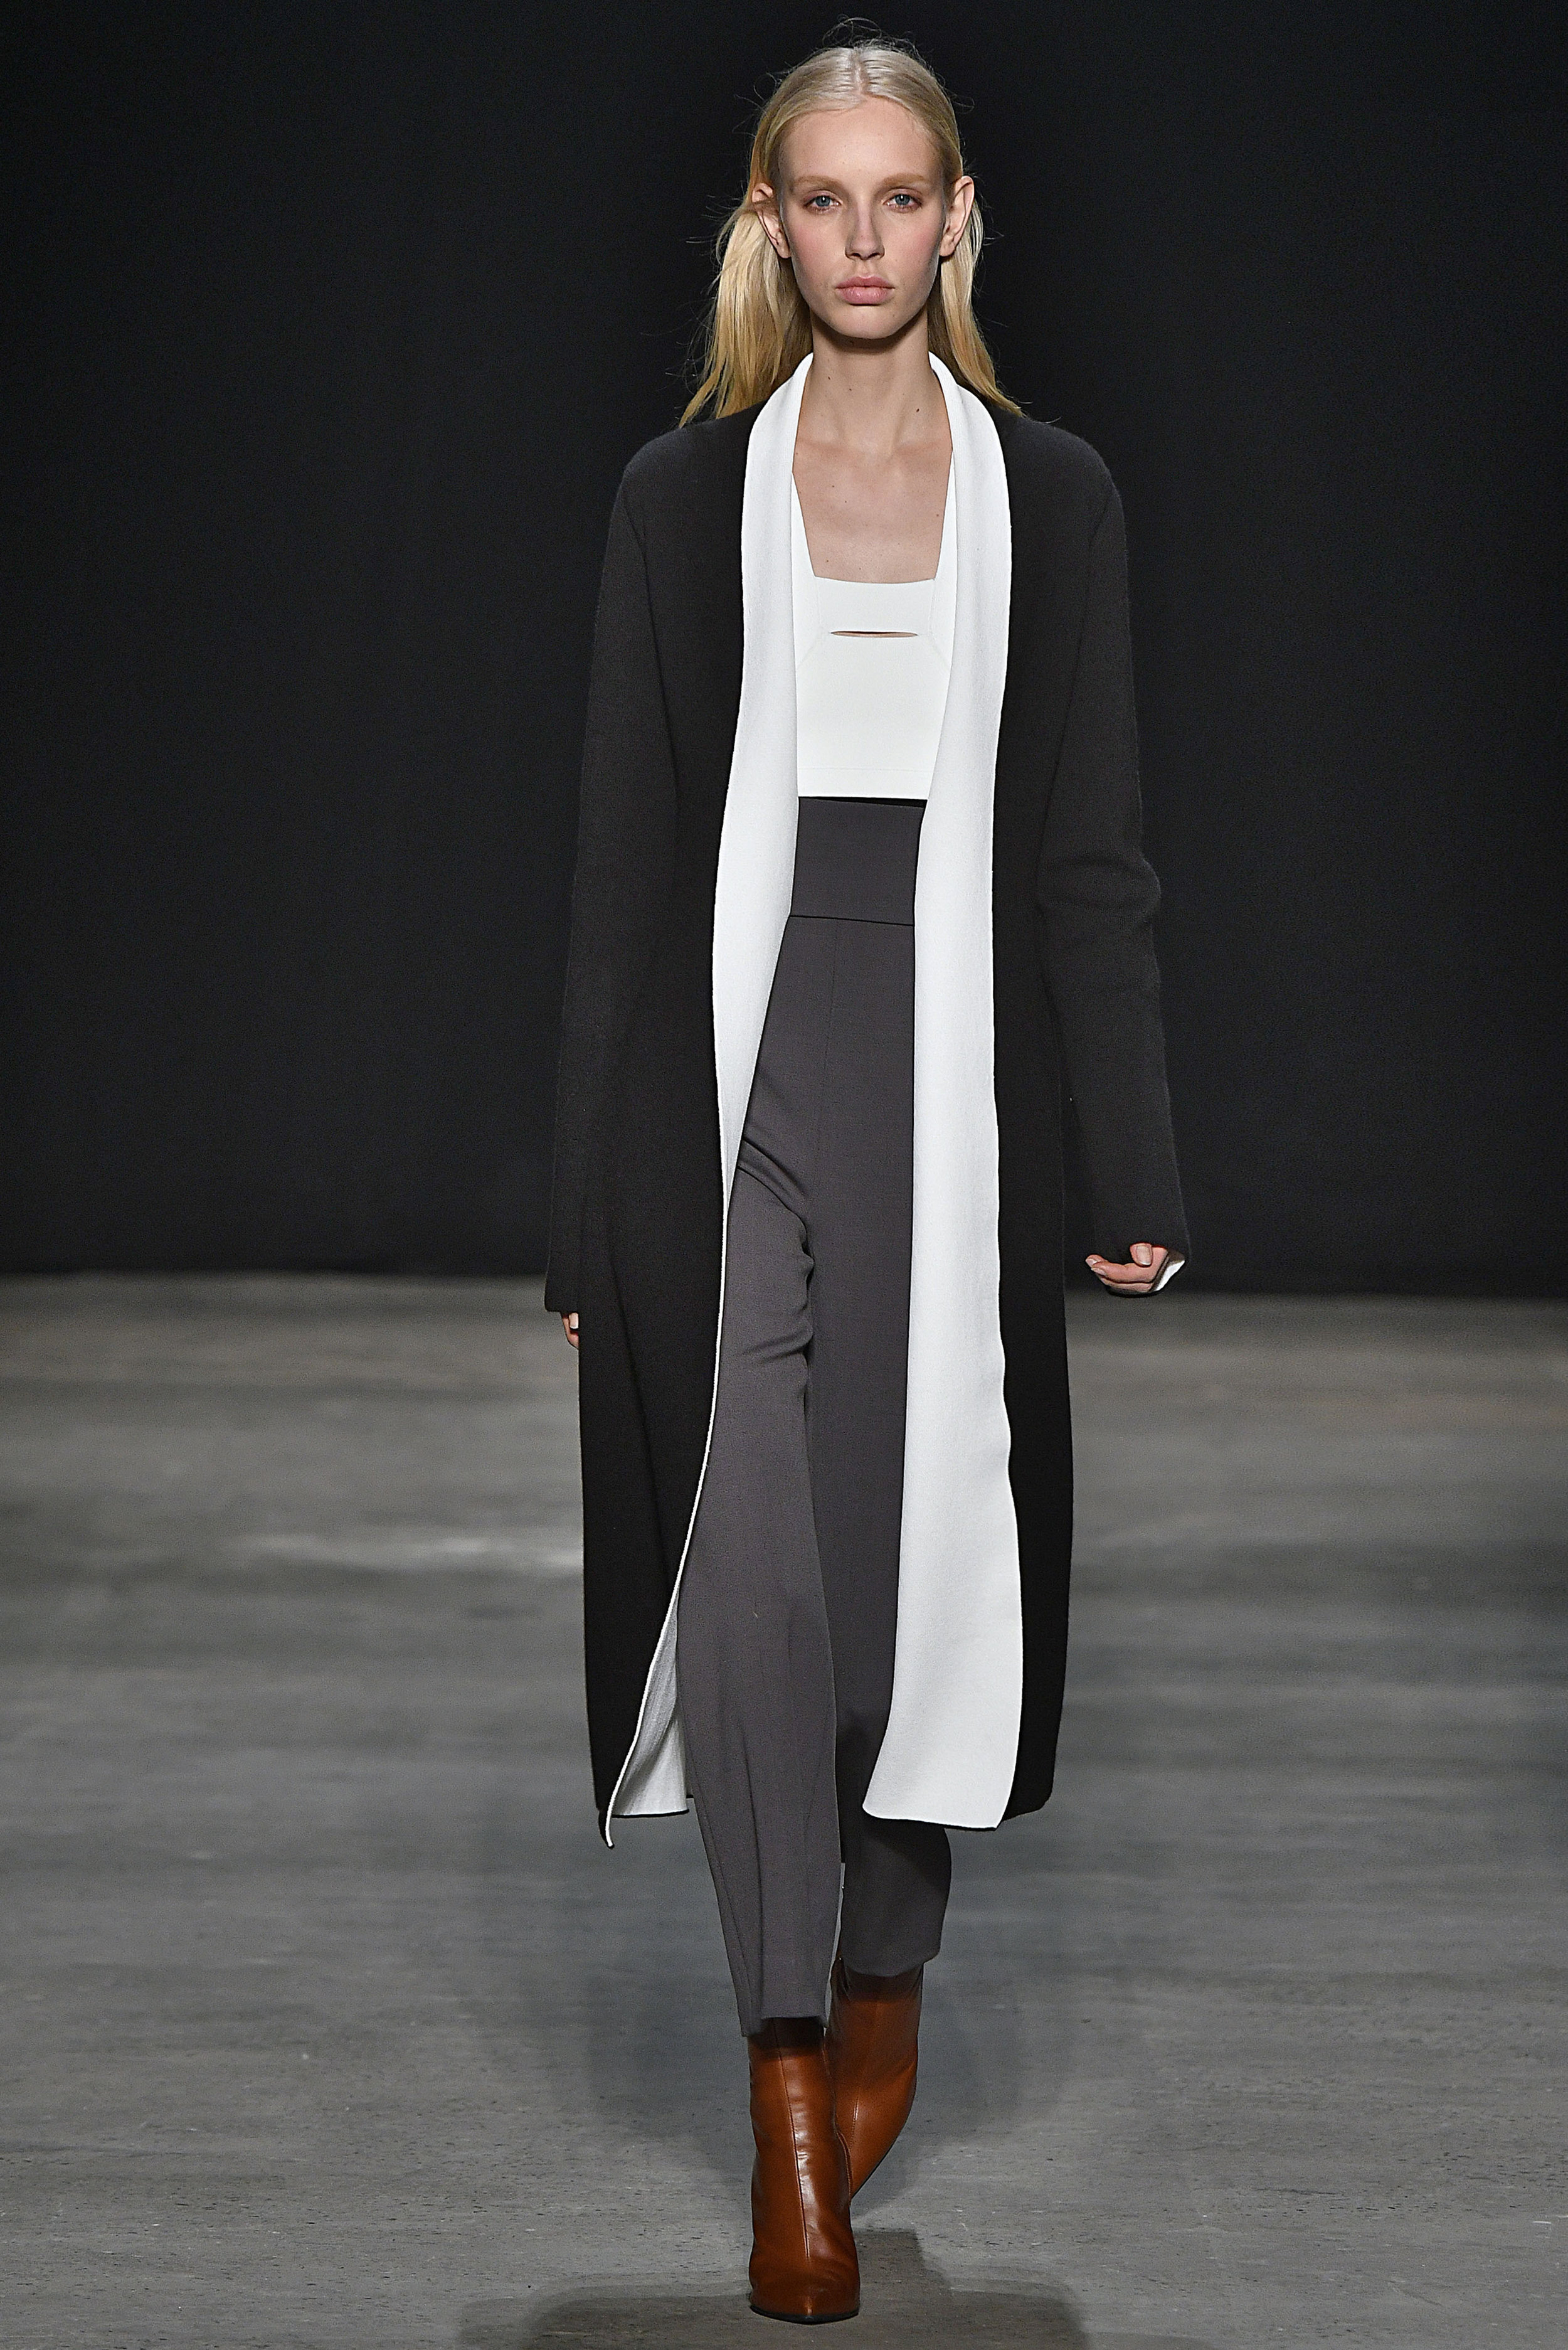 Narciso Rodriguez Fall 2017 collection. Black cashmere/pale blue double knit coat over pale blue/black knit top with slate wool barathea pant.